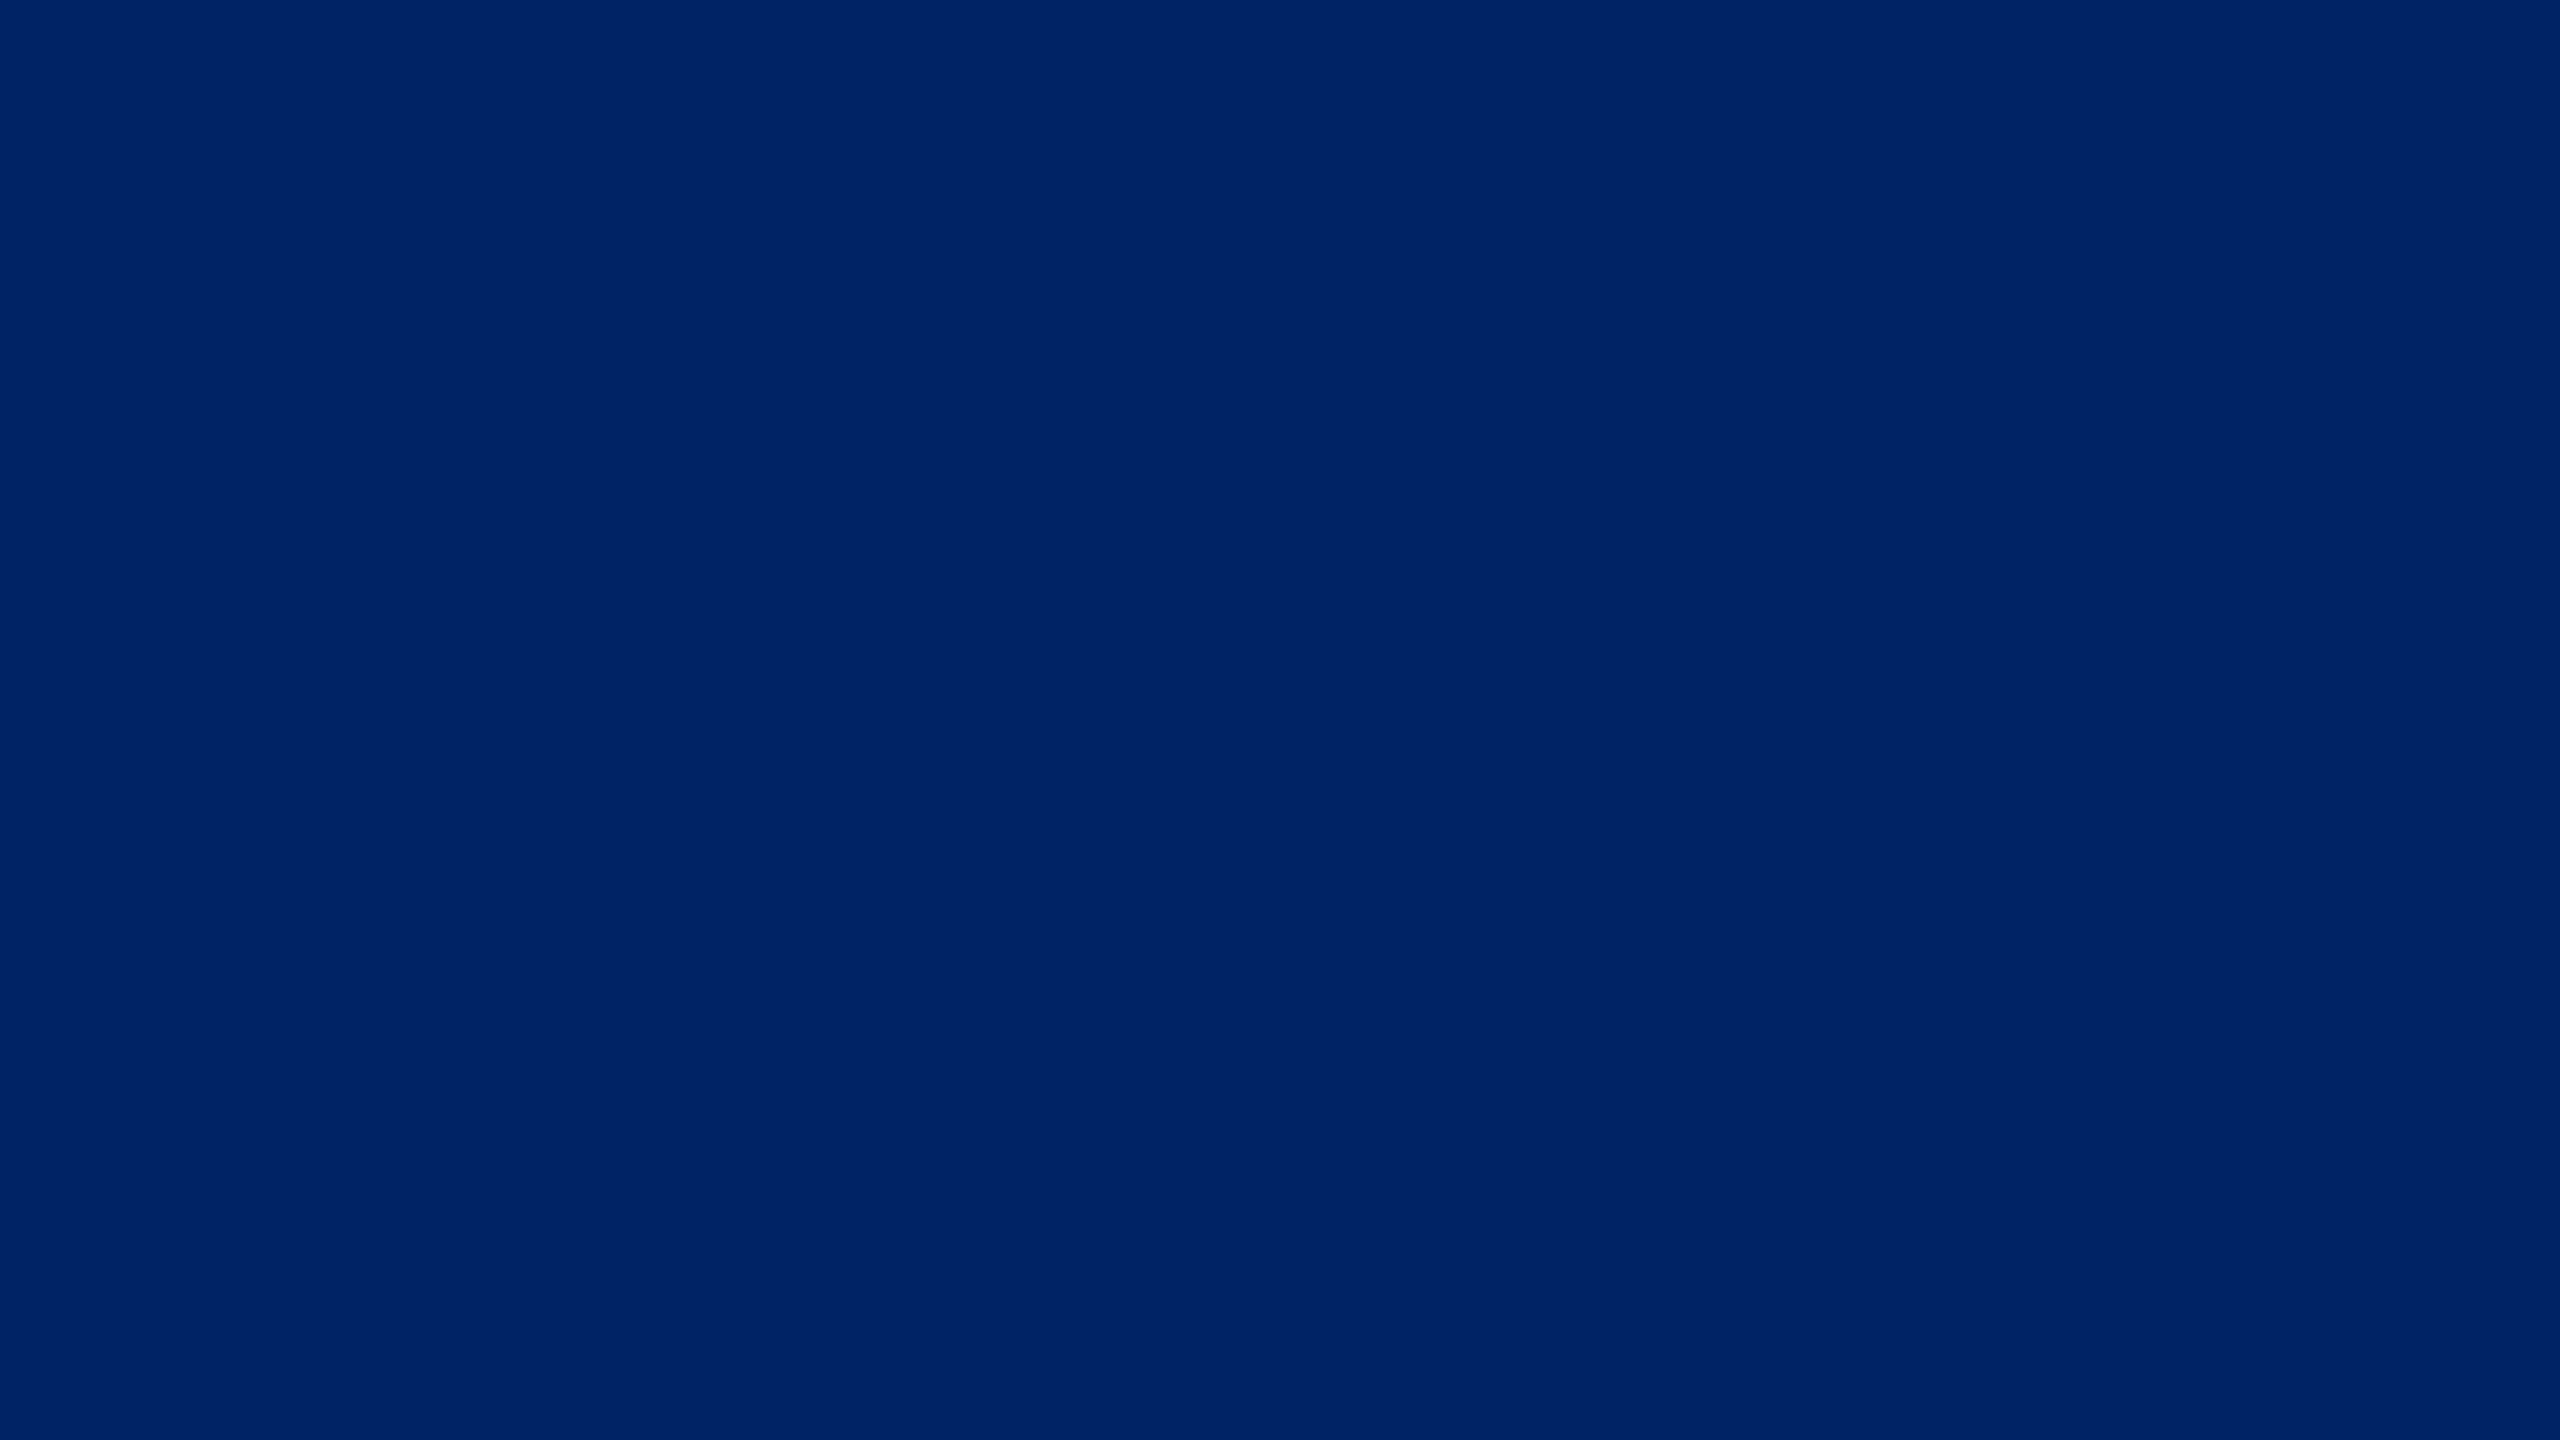 Solid Bright Blue Background 2560x1440 royal blue 2560x1440